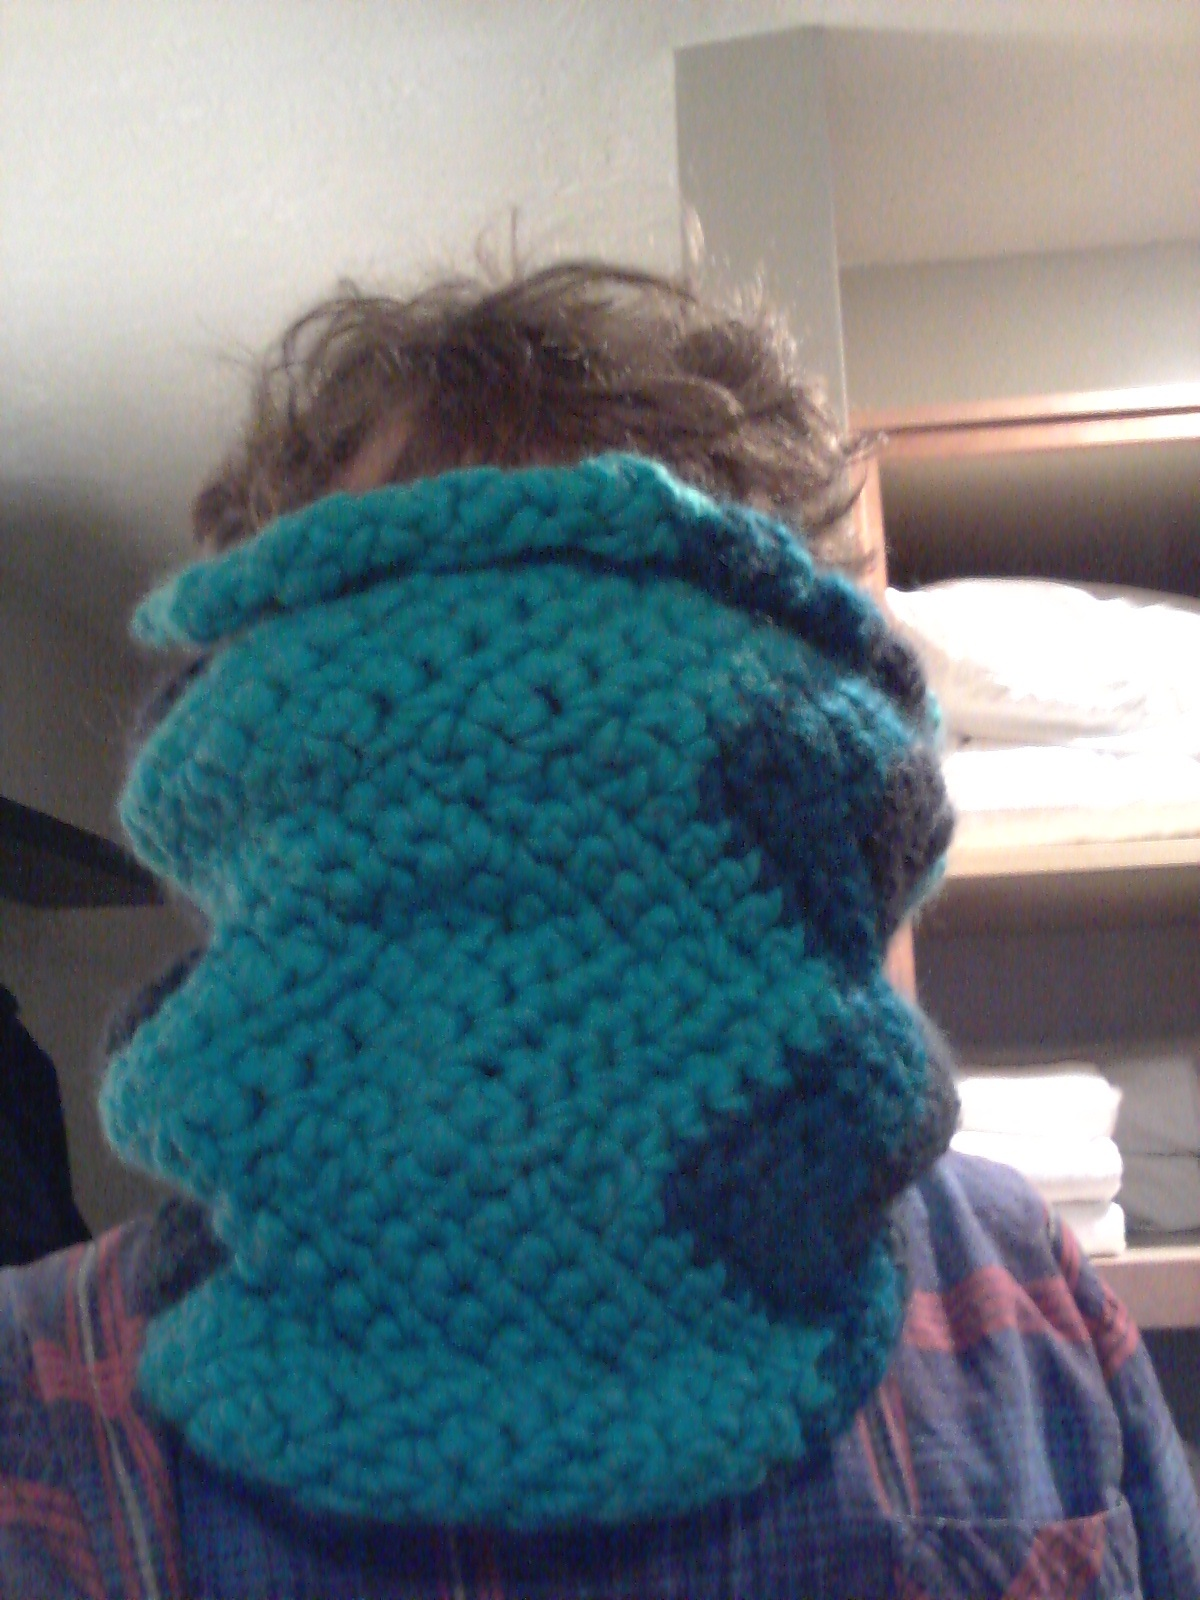 2012-01-30-nearyscarf.jpg